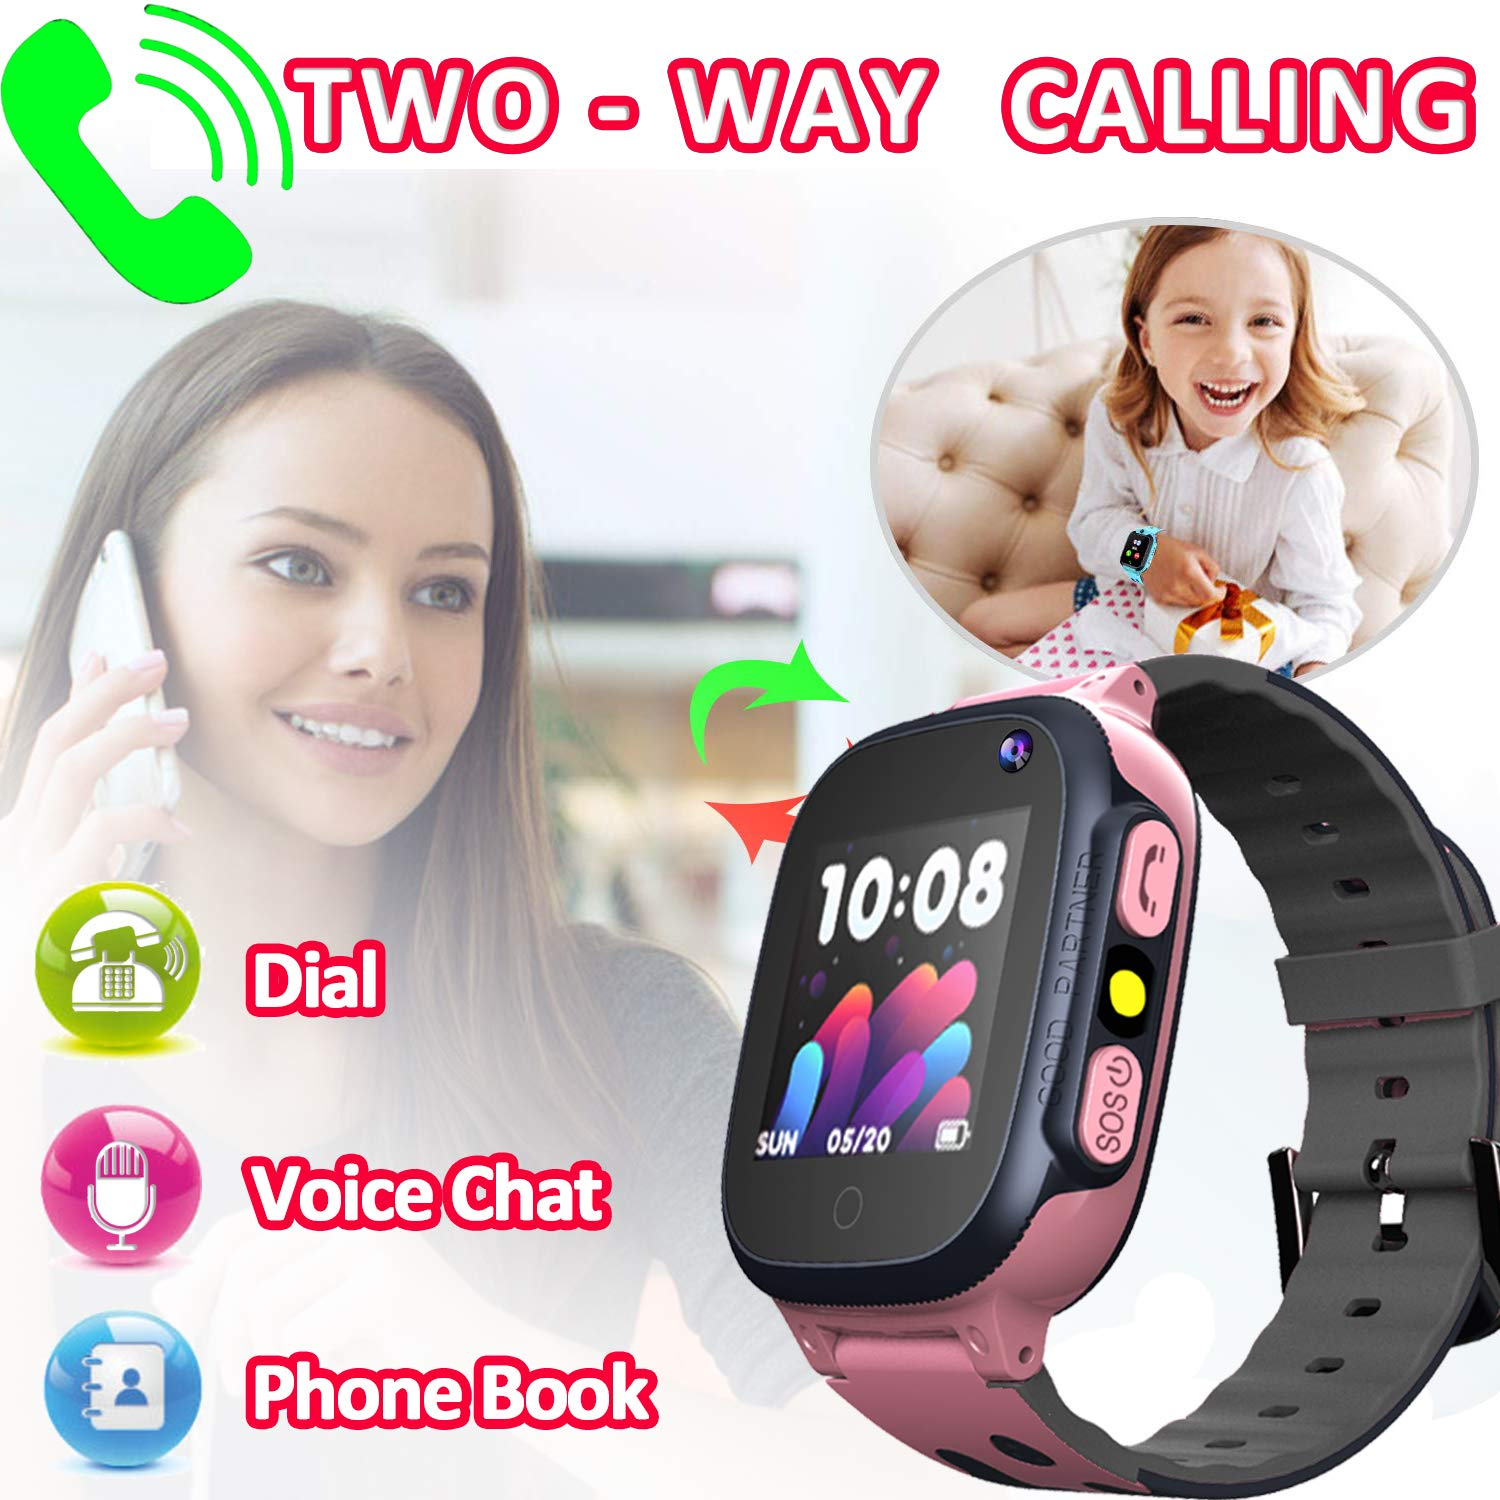 MiKin Children Smart Watches for Girls Boys Age 3-12 Kids Smartwatch Phone with GPS Tracker 2 Way Call SOS Remote Camera Touch Screen Alarm Clock Flashlight Voice Chat Gizmo Wrist Watch Android iOS by MiKin (Image #3)